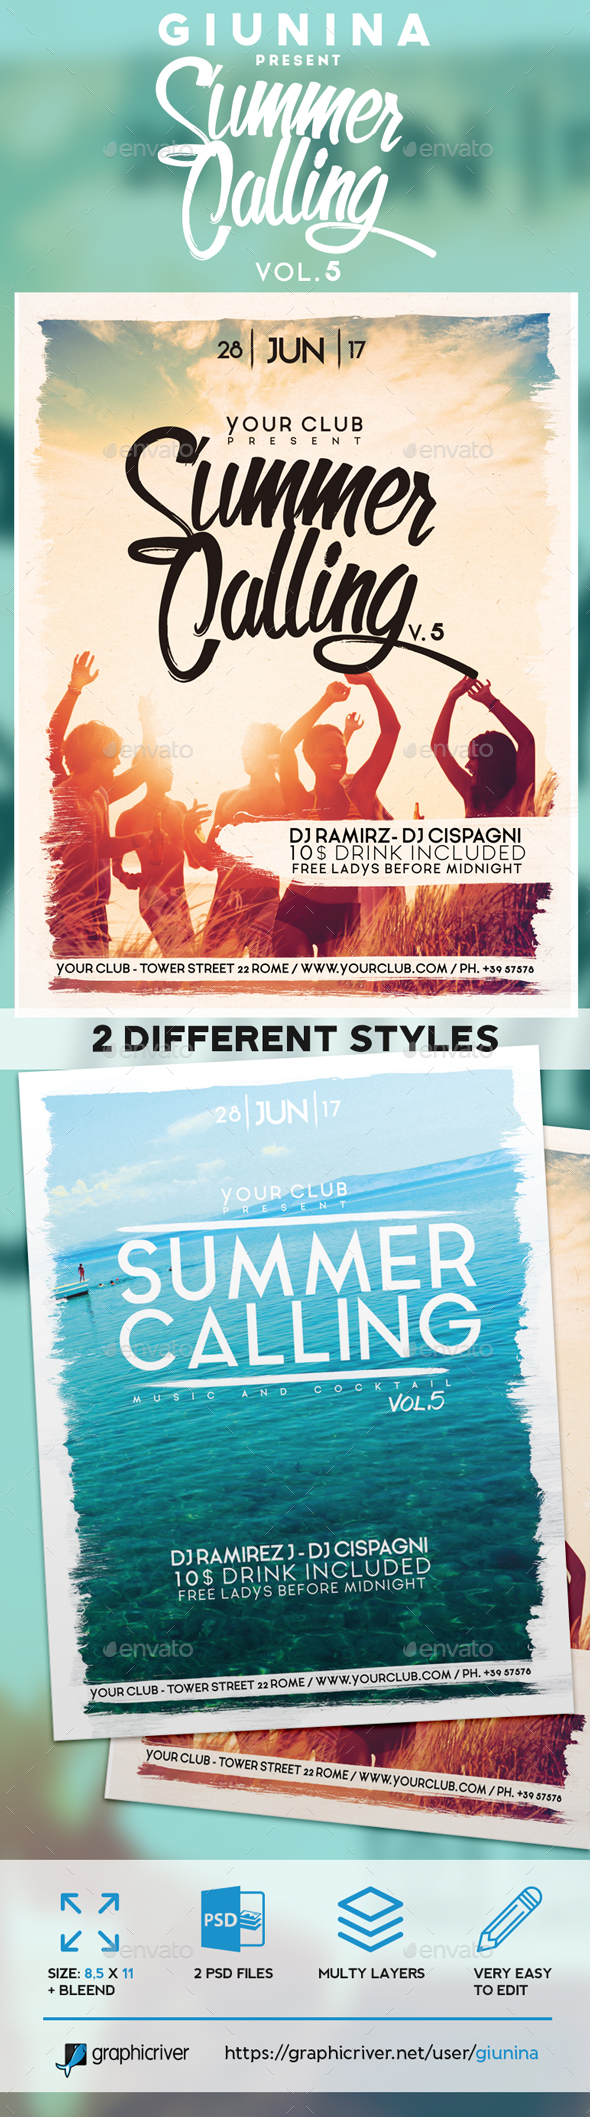 Summer Calling Vol. 4 Flyer/Poster - Events Flyers